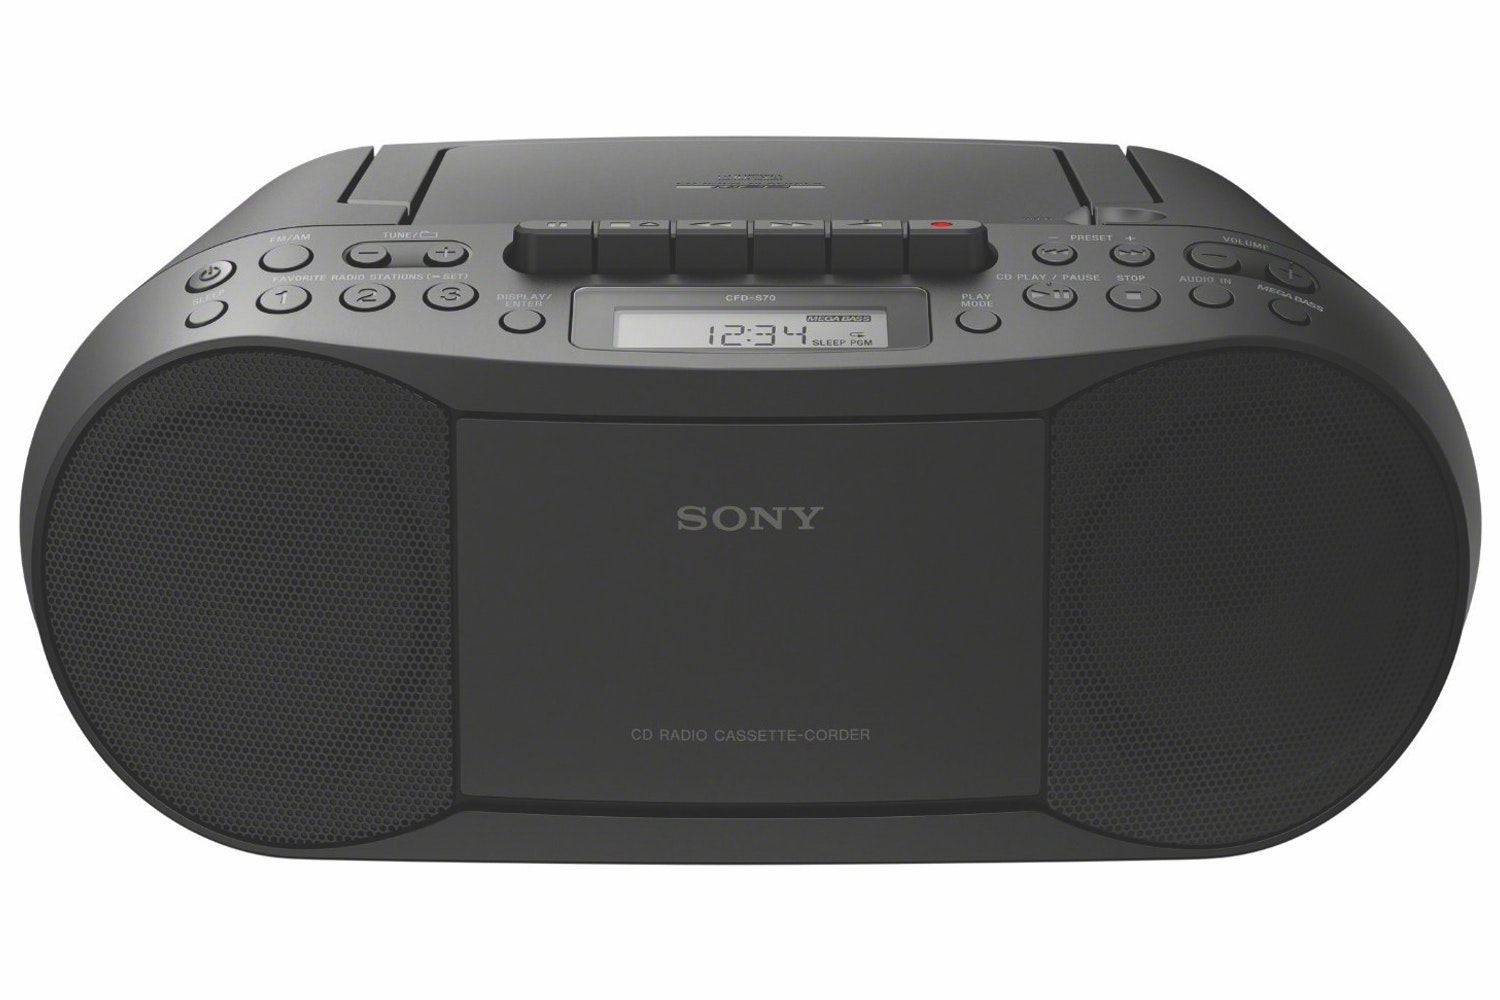 Sony CD/Casette Boombox with Radio | CFD-S70